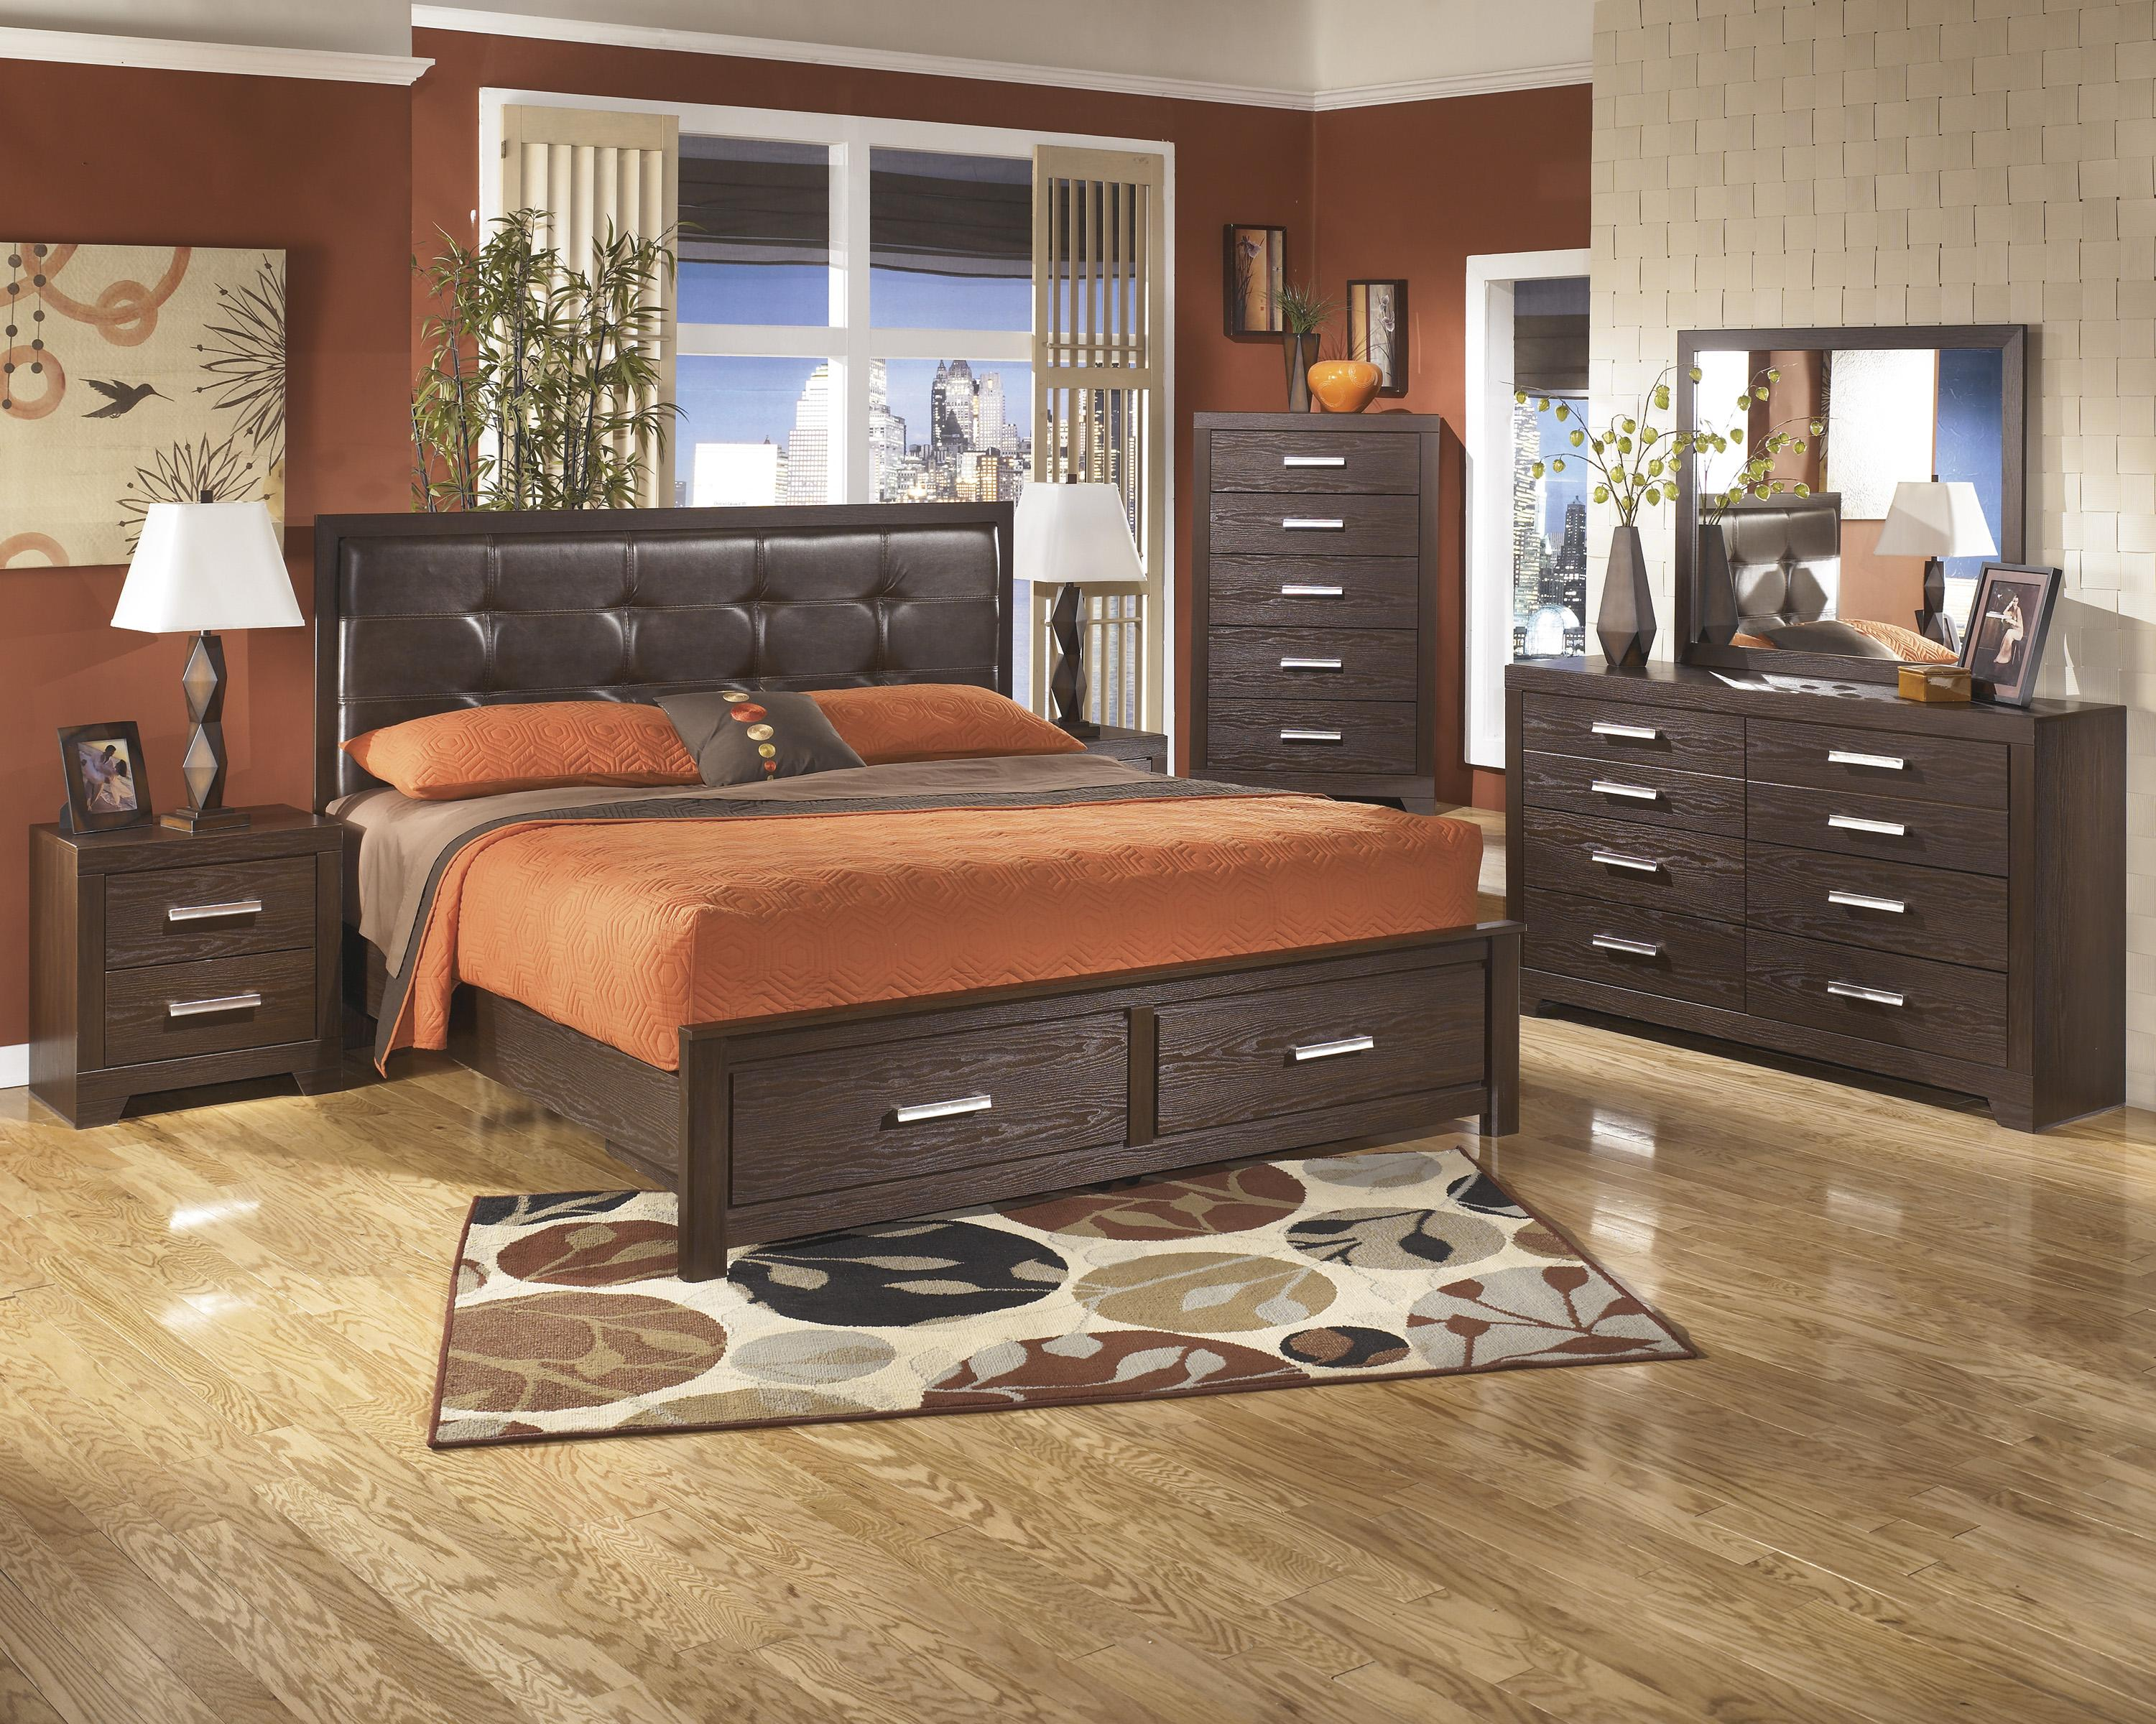 Signature Design by Ashley Aleydis King Bedroom Group - Item Number: B165 K Bedroom Group 2